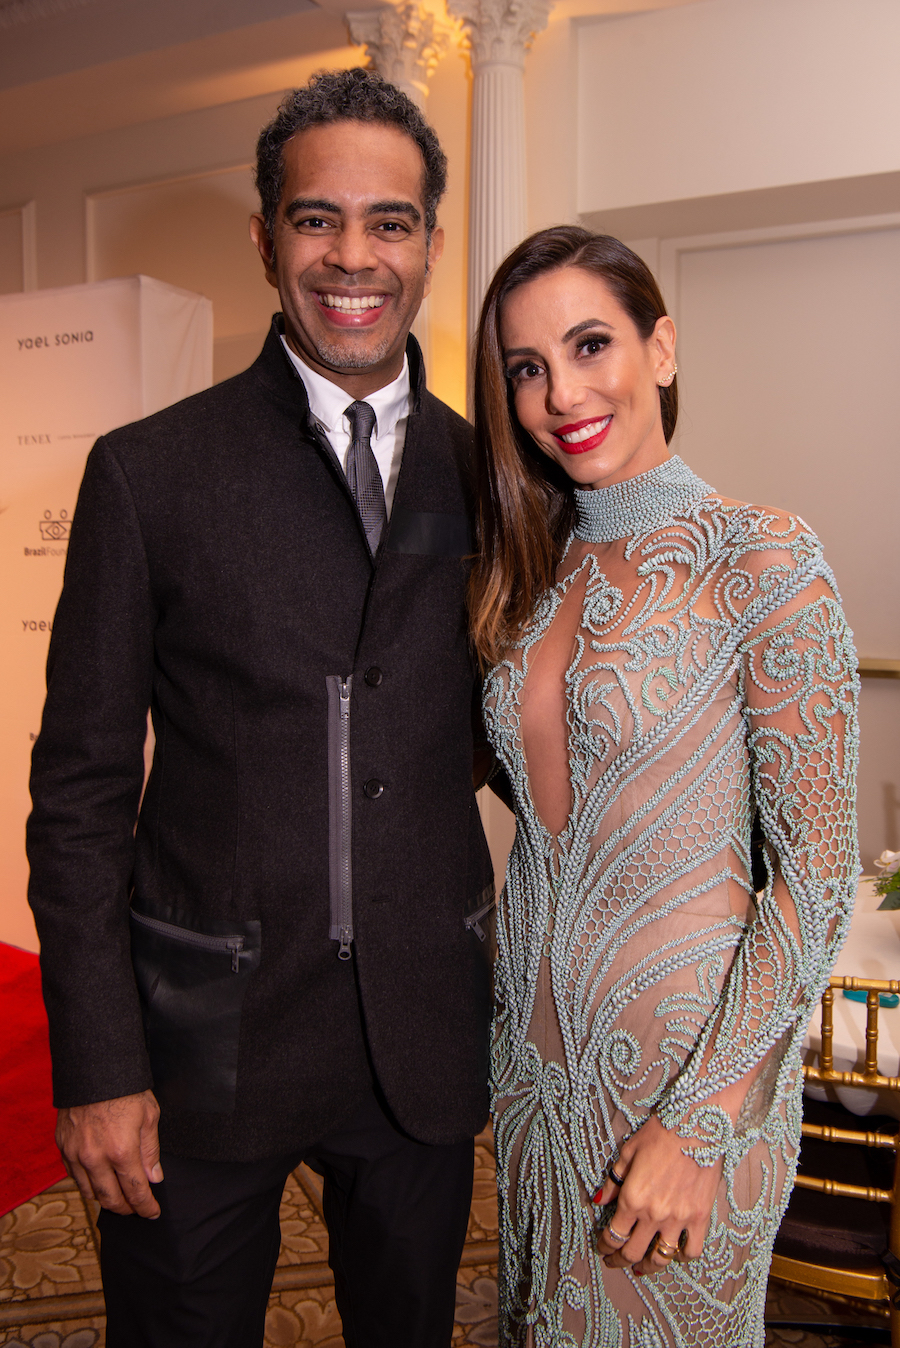 Jair & Khallil Oliveira BrazilFoundation XVI Gala New York Celebrating the Amazon Plaza